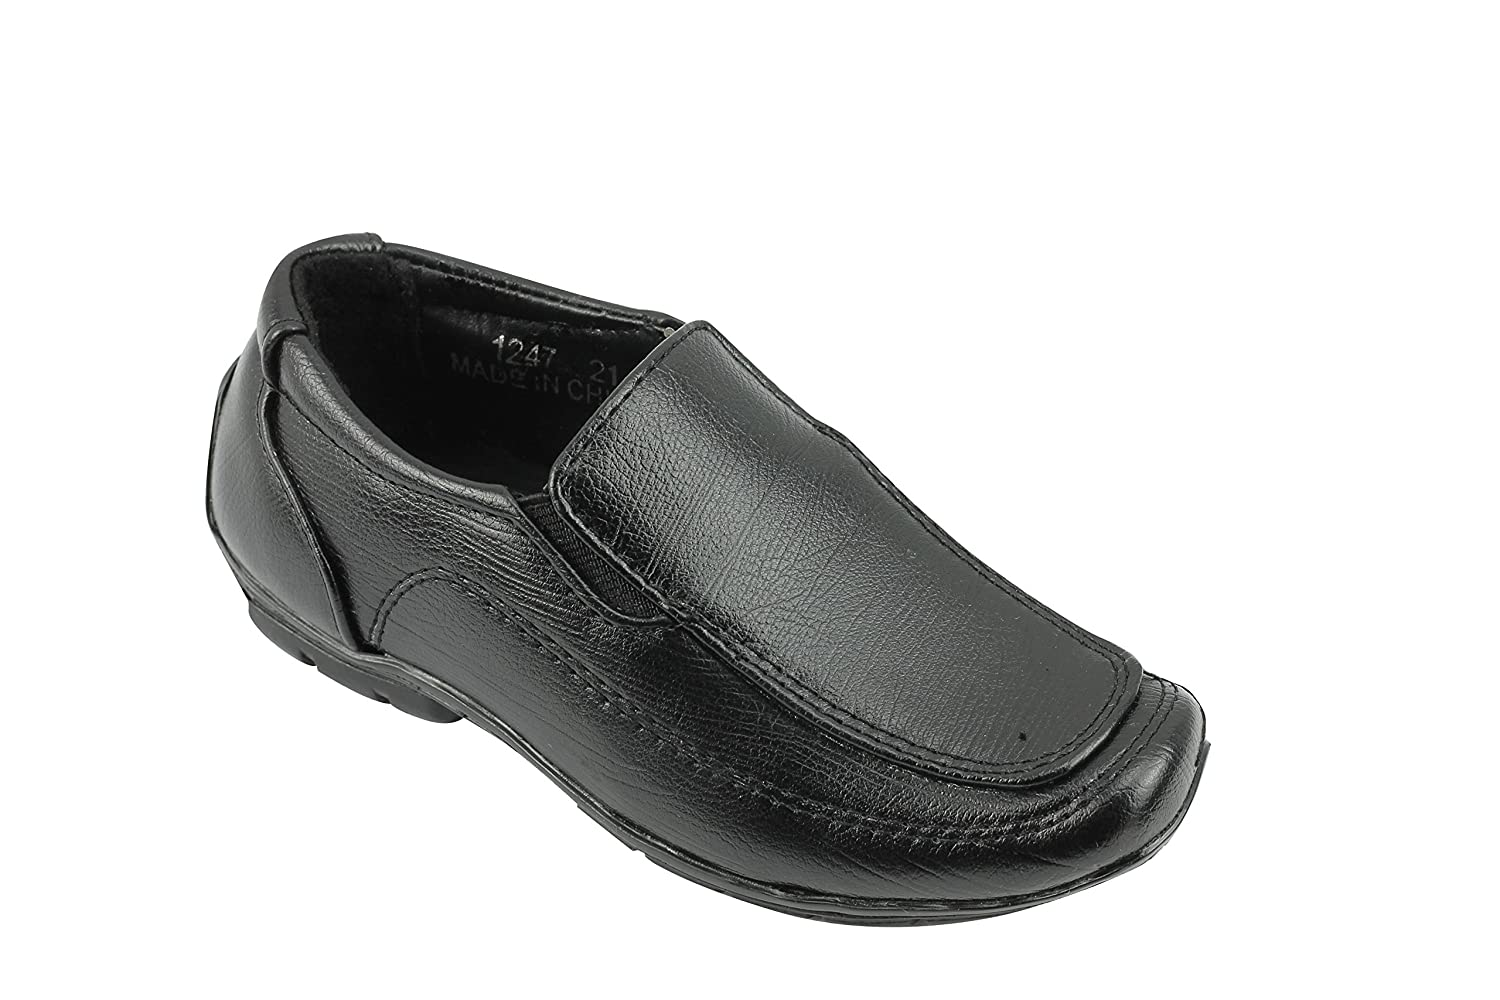 New Teens Boys Kids Faux Leather Slip on Loafers Smart Casual Back School Trainers Shoes UK Sizes